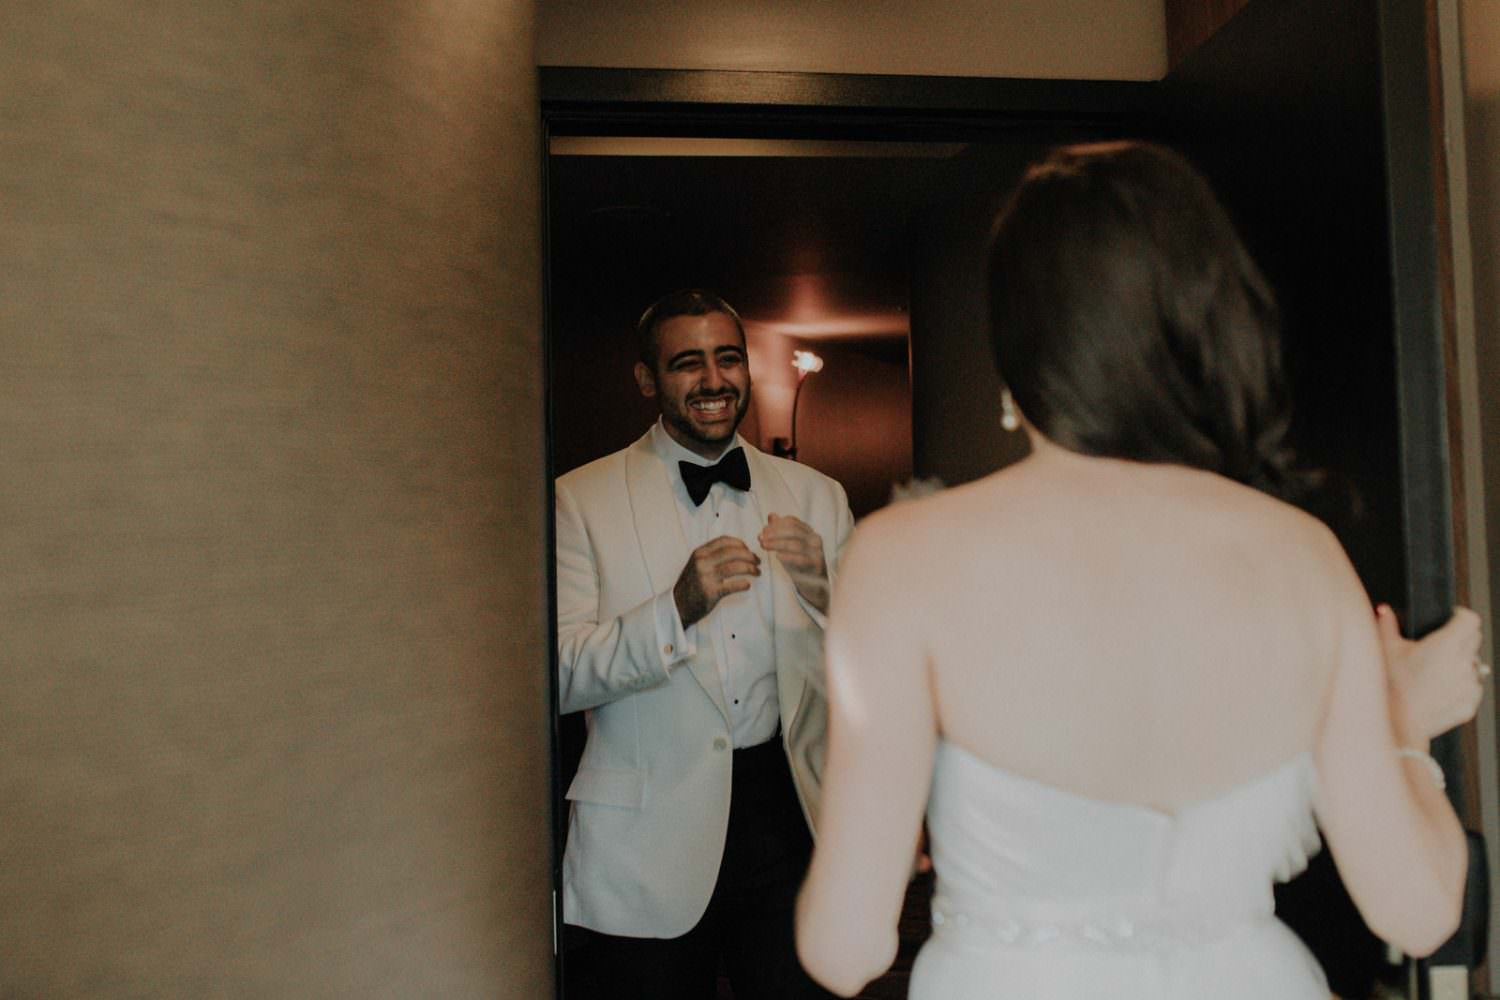 Groom at the Roxy Hotel seeing his Bride for the first time